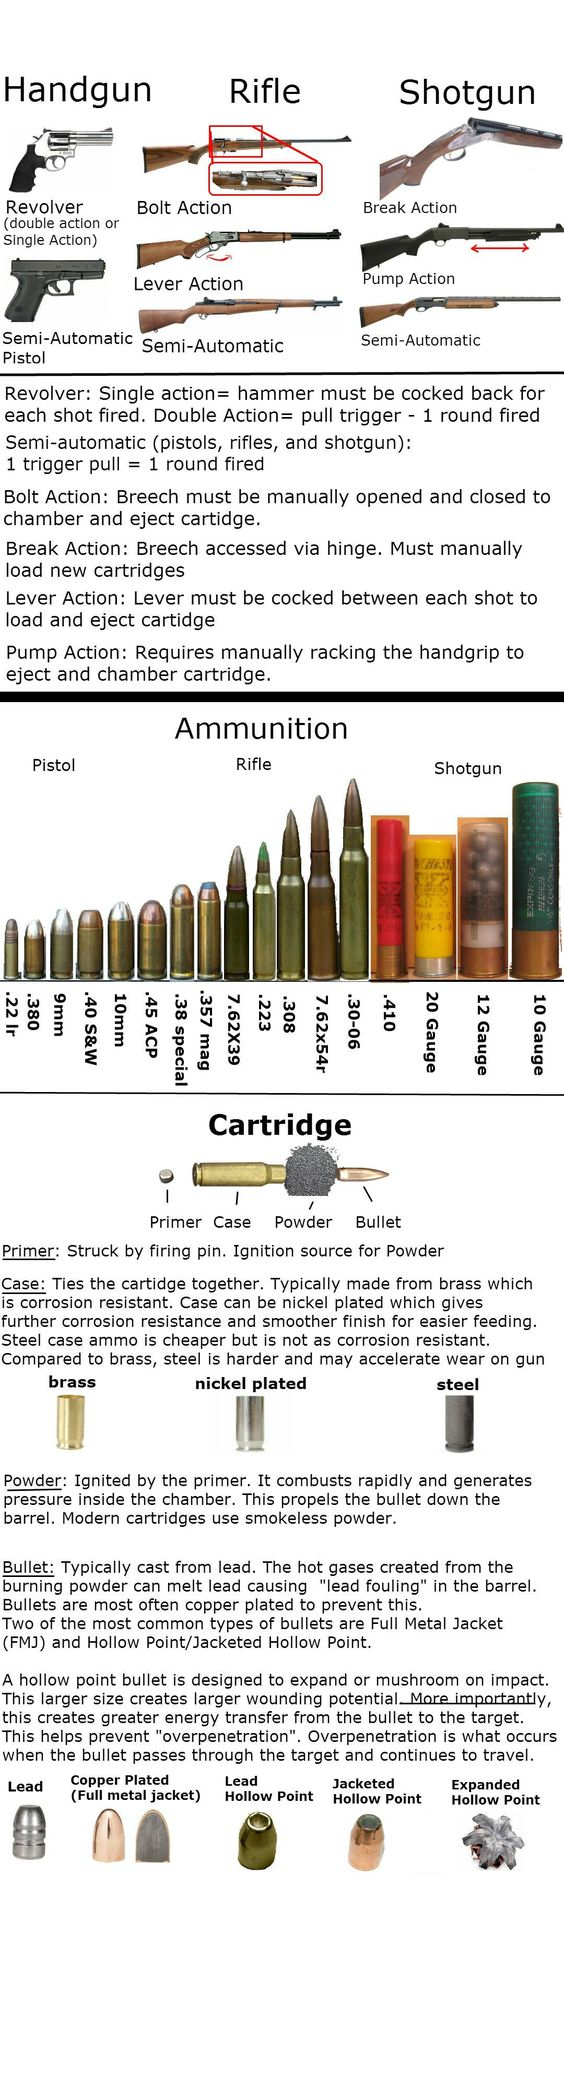 Gun Infographic (see link for more) - visit us at the World Shooting and Recreational Complex, Sparta, IL